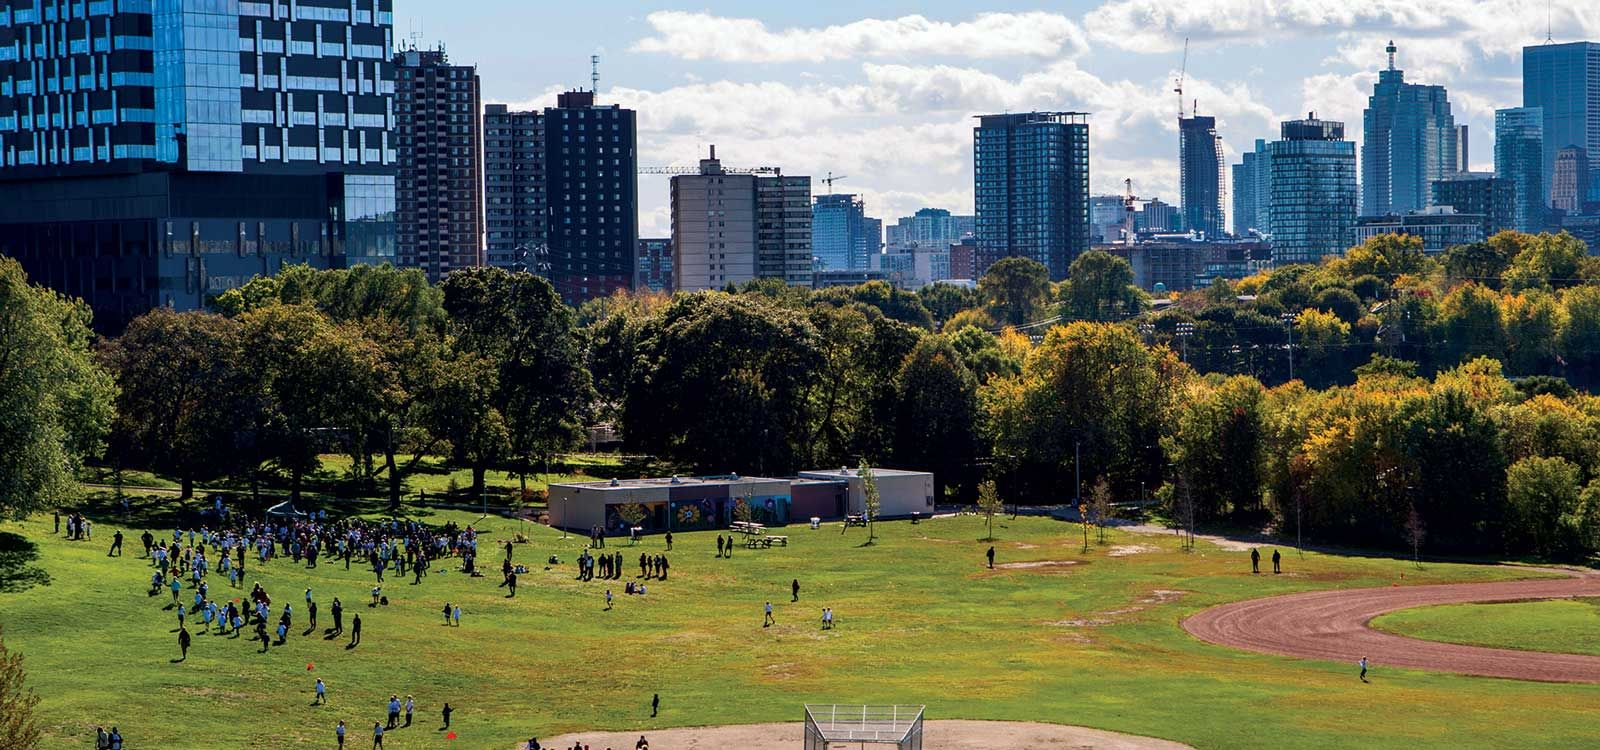 A large gathering of people in Riverdale Park, with the Toronto skyline in the background. Image: Geoff Fitzgerald